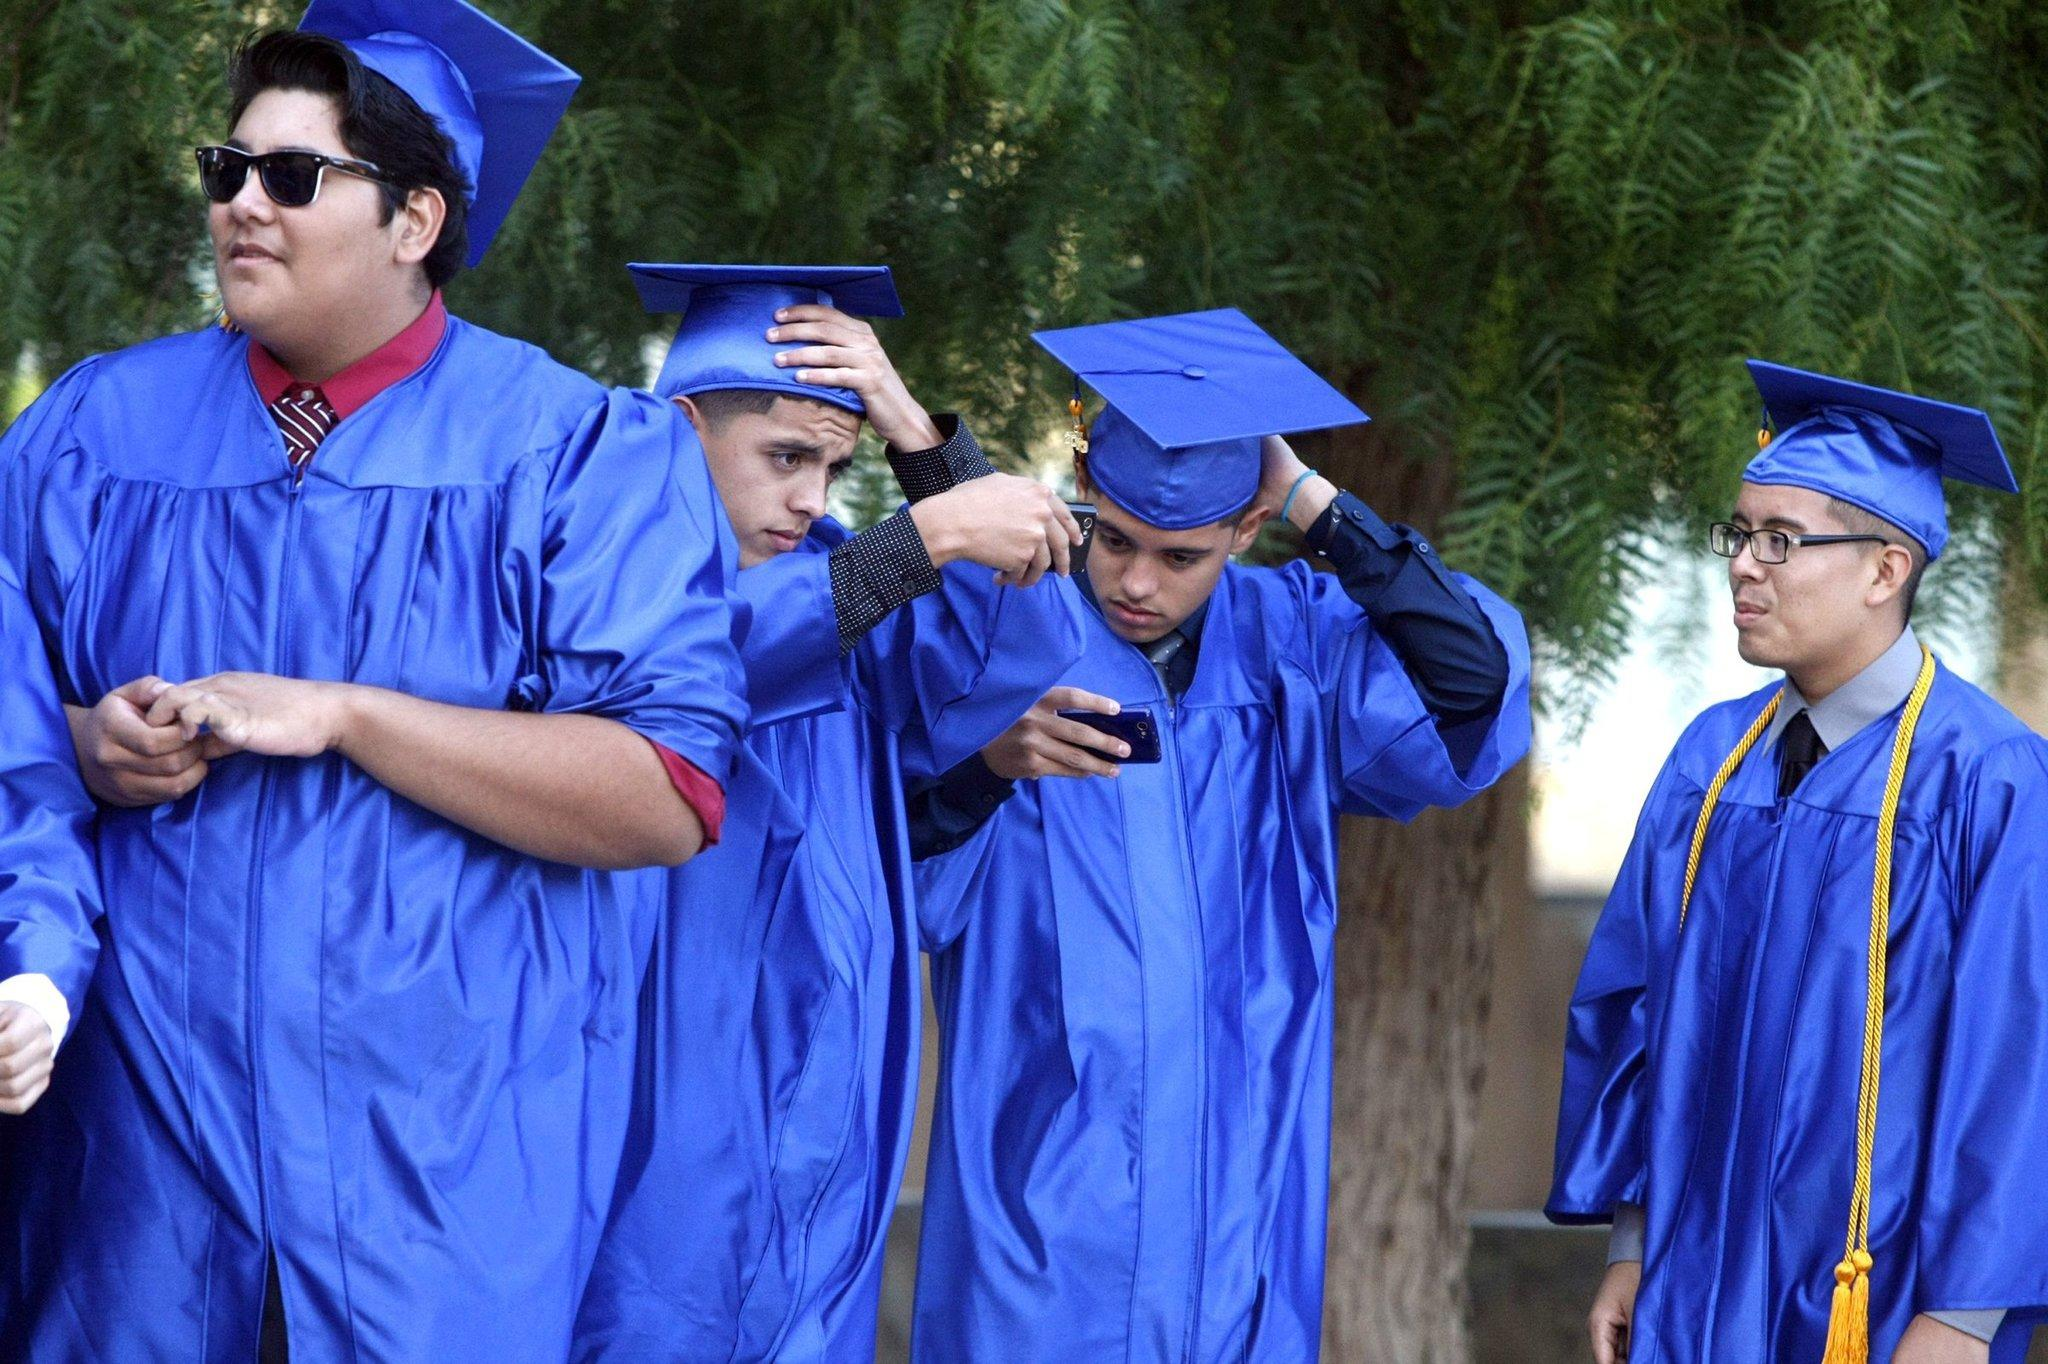 A University of Chicago study shows that Chicago students who get on track in ninth grade stay on track: They are four times more likely to graduate than those who don't.